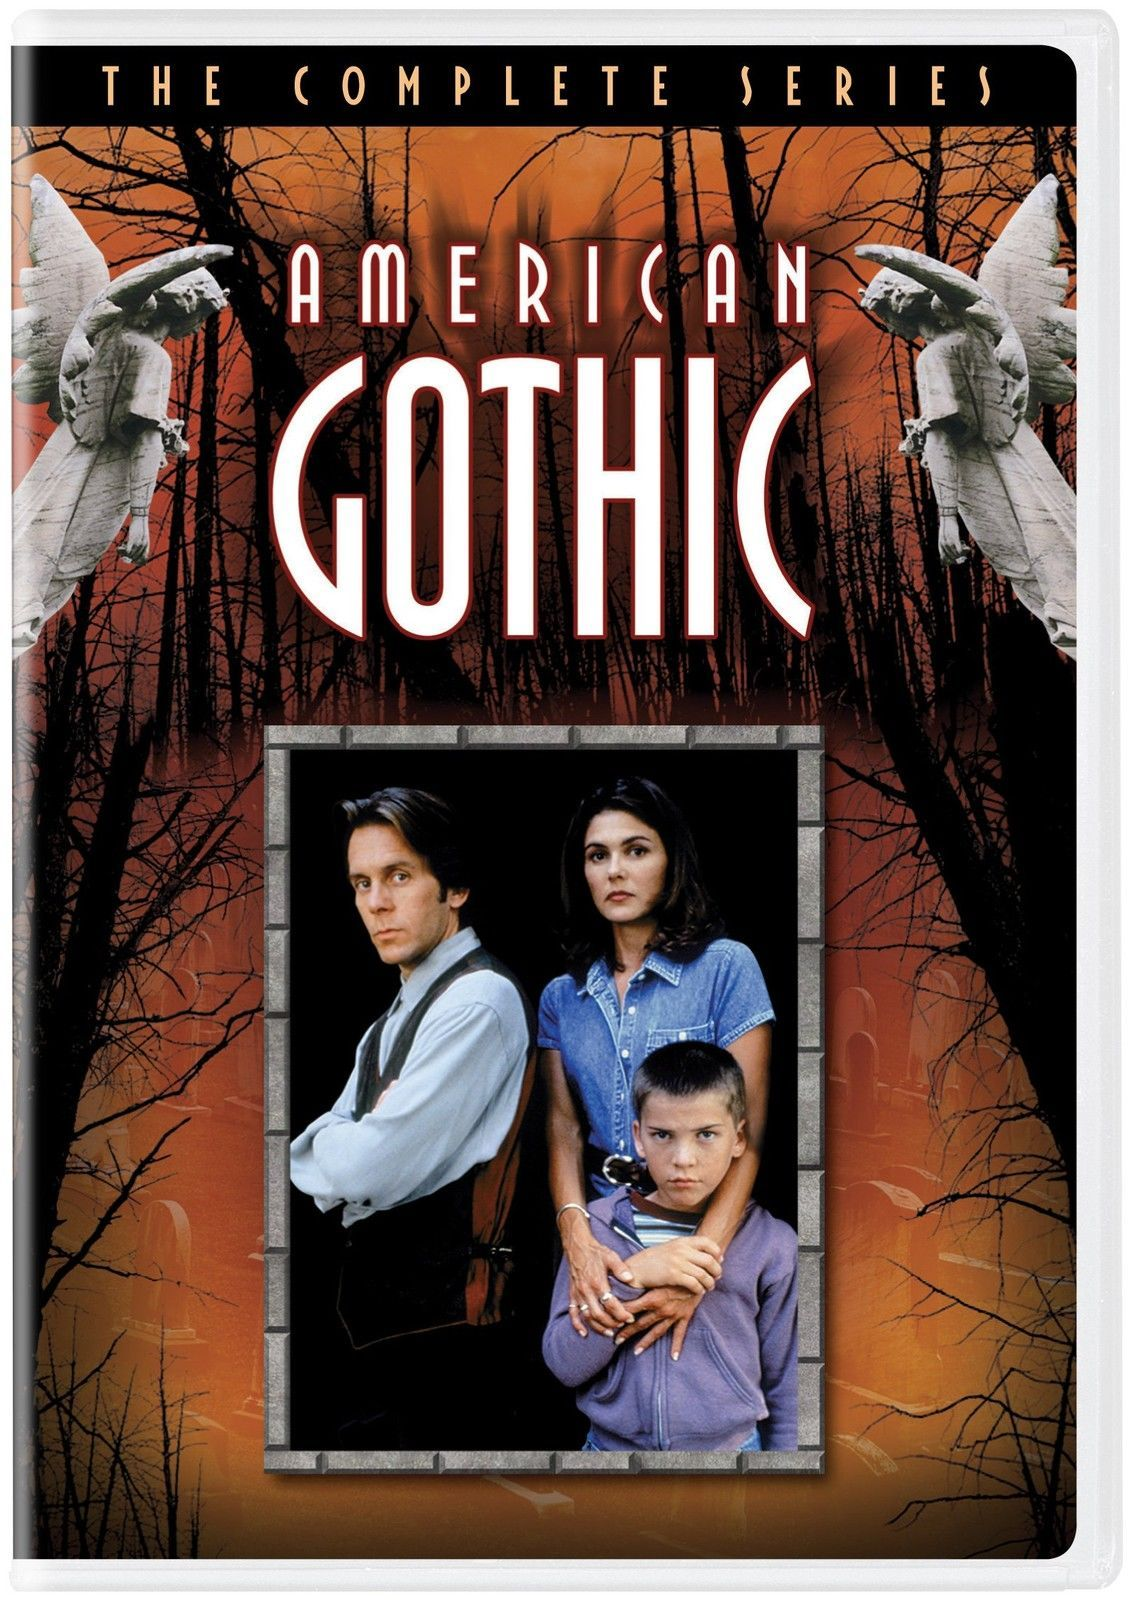 American Gothic - The Complete Series (DVD, 2005, 3-Disc Set) New TV Show